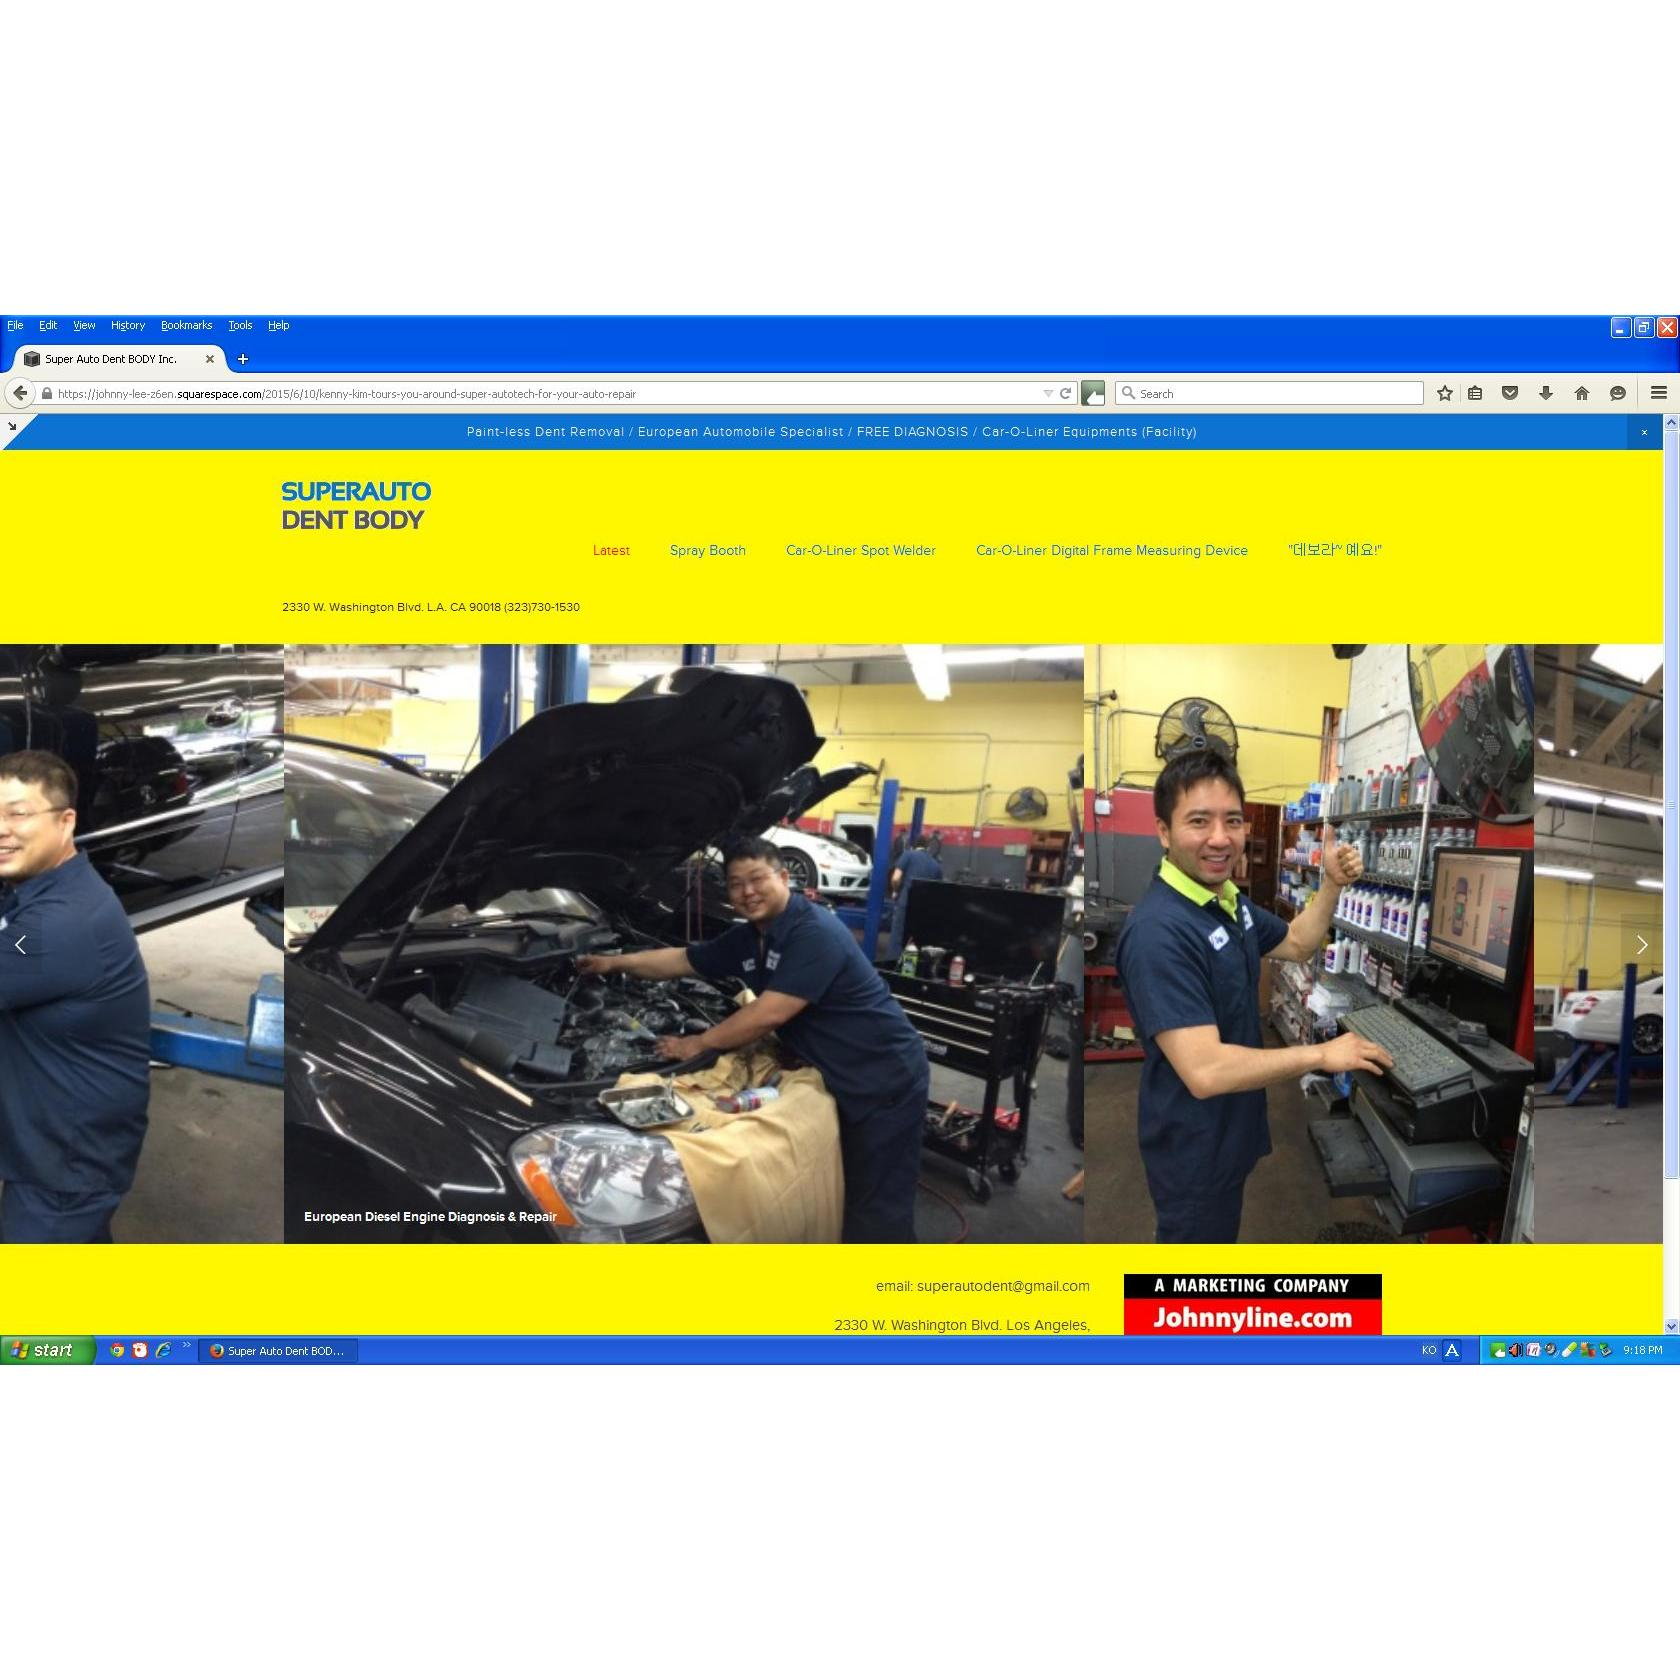 Super AutoDent Body Inc. dba Super Autoteck Inc. - Los Angeles, CA - Auto Body Repair & Painting